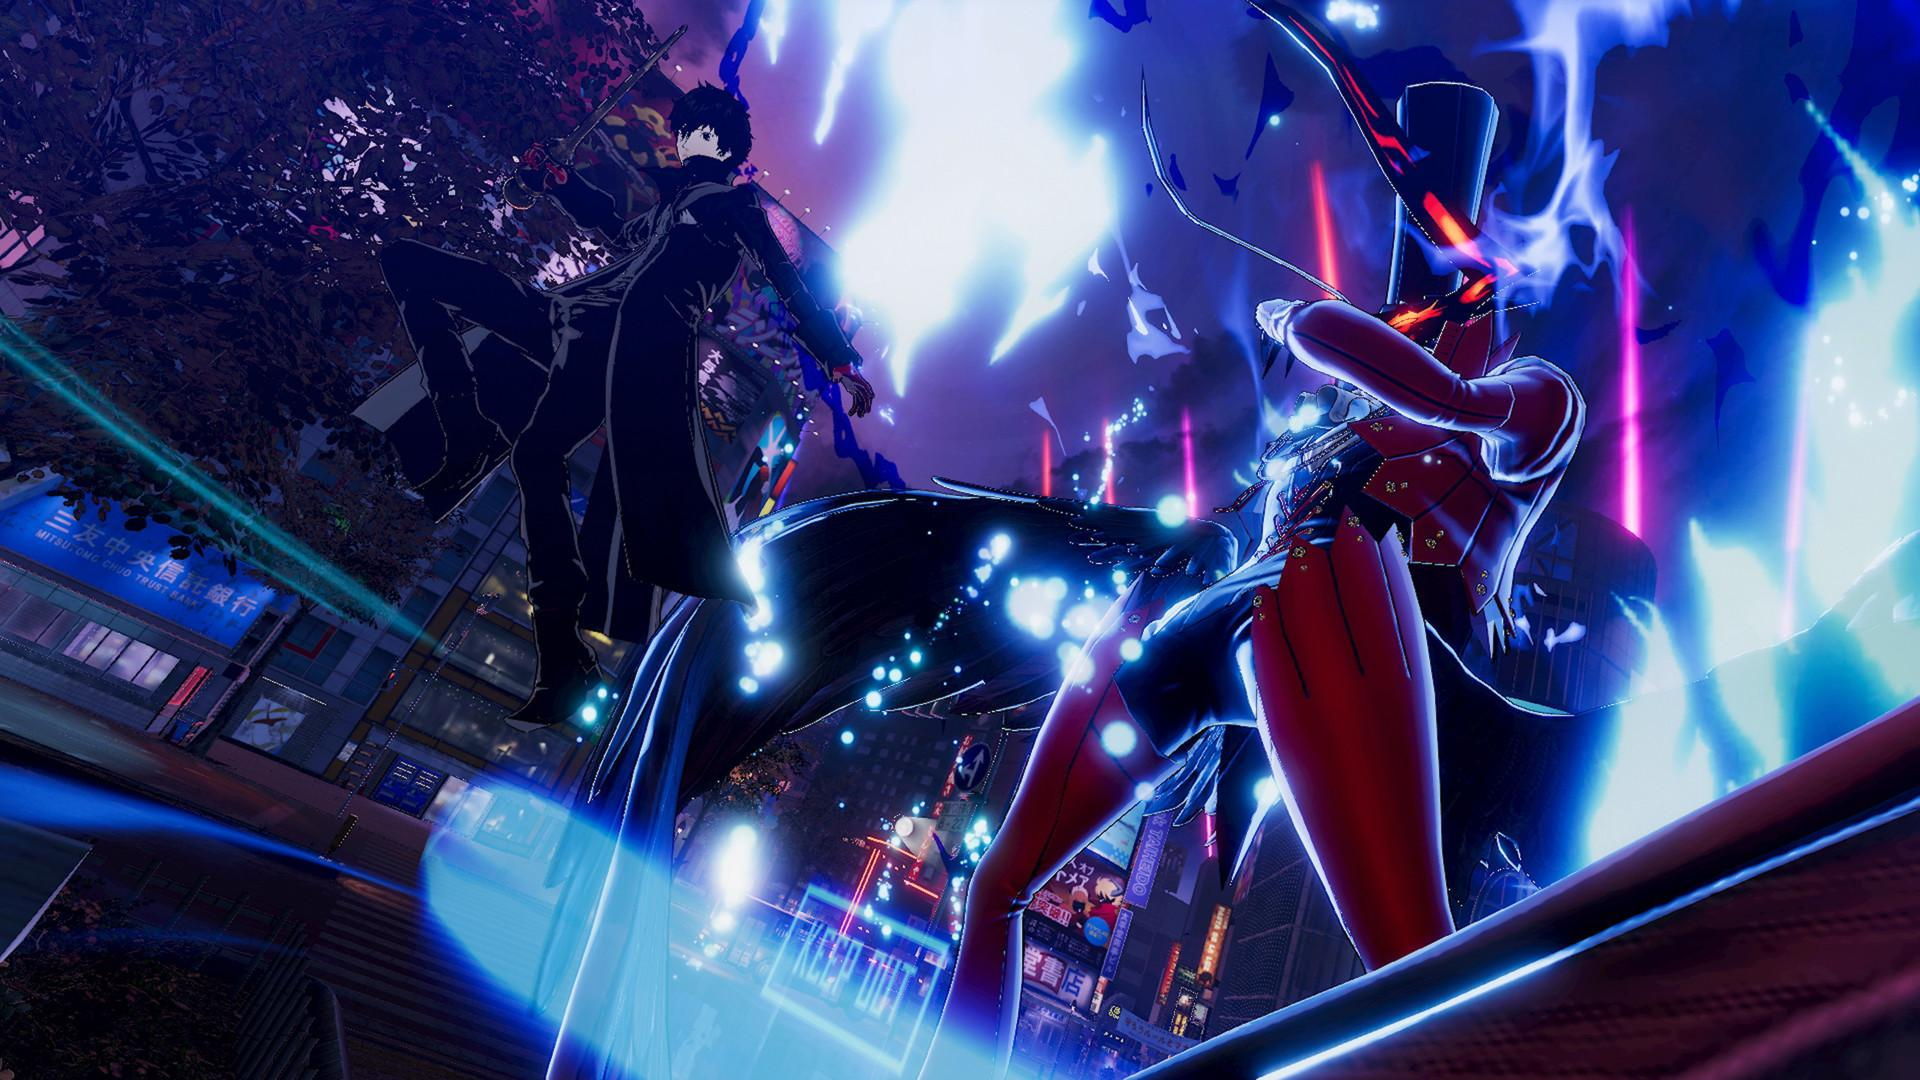 Persona 5 tips, tricks and benefit of dynamic team